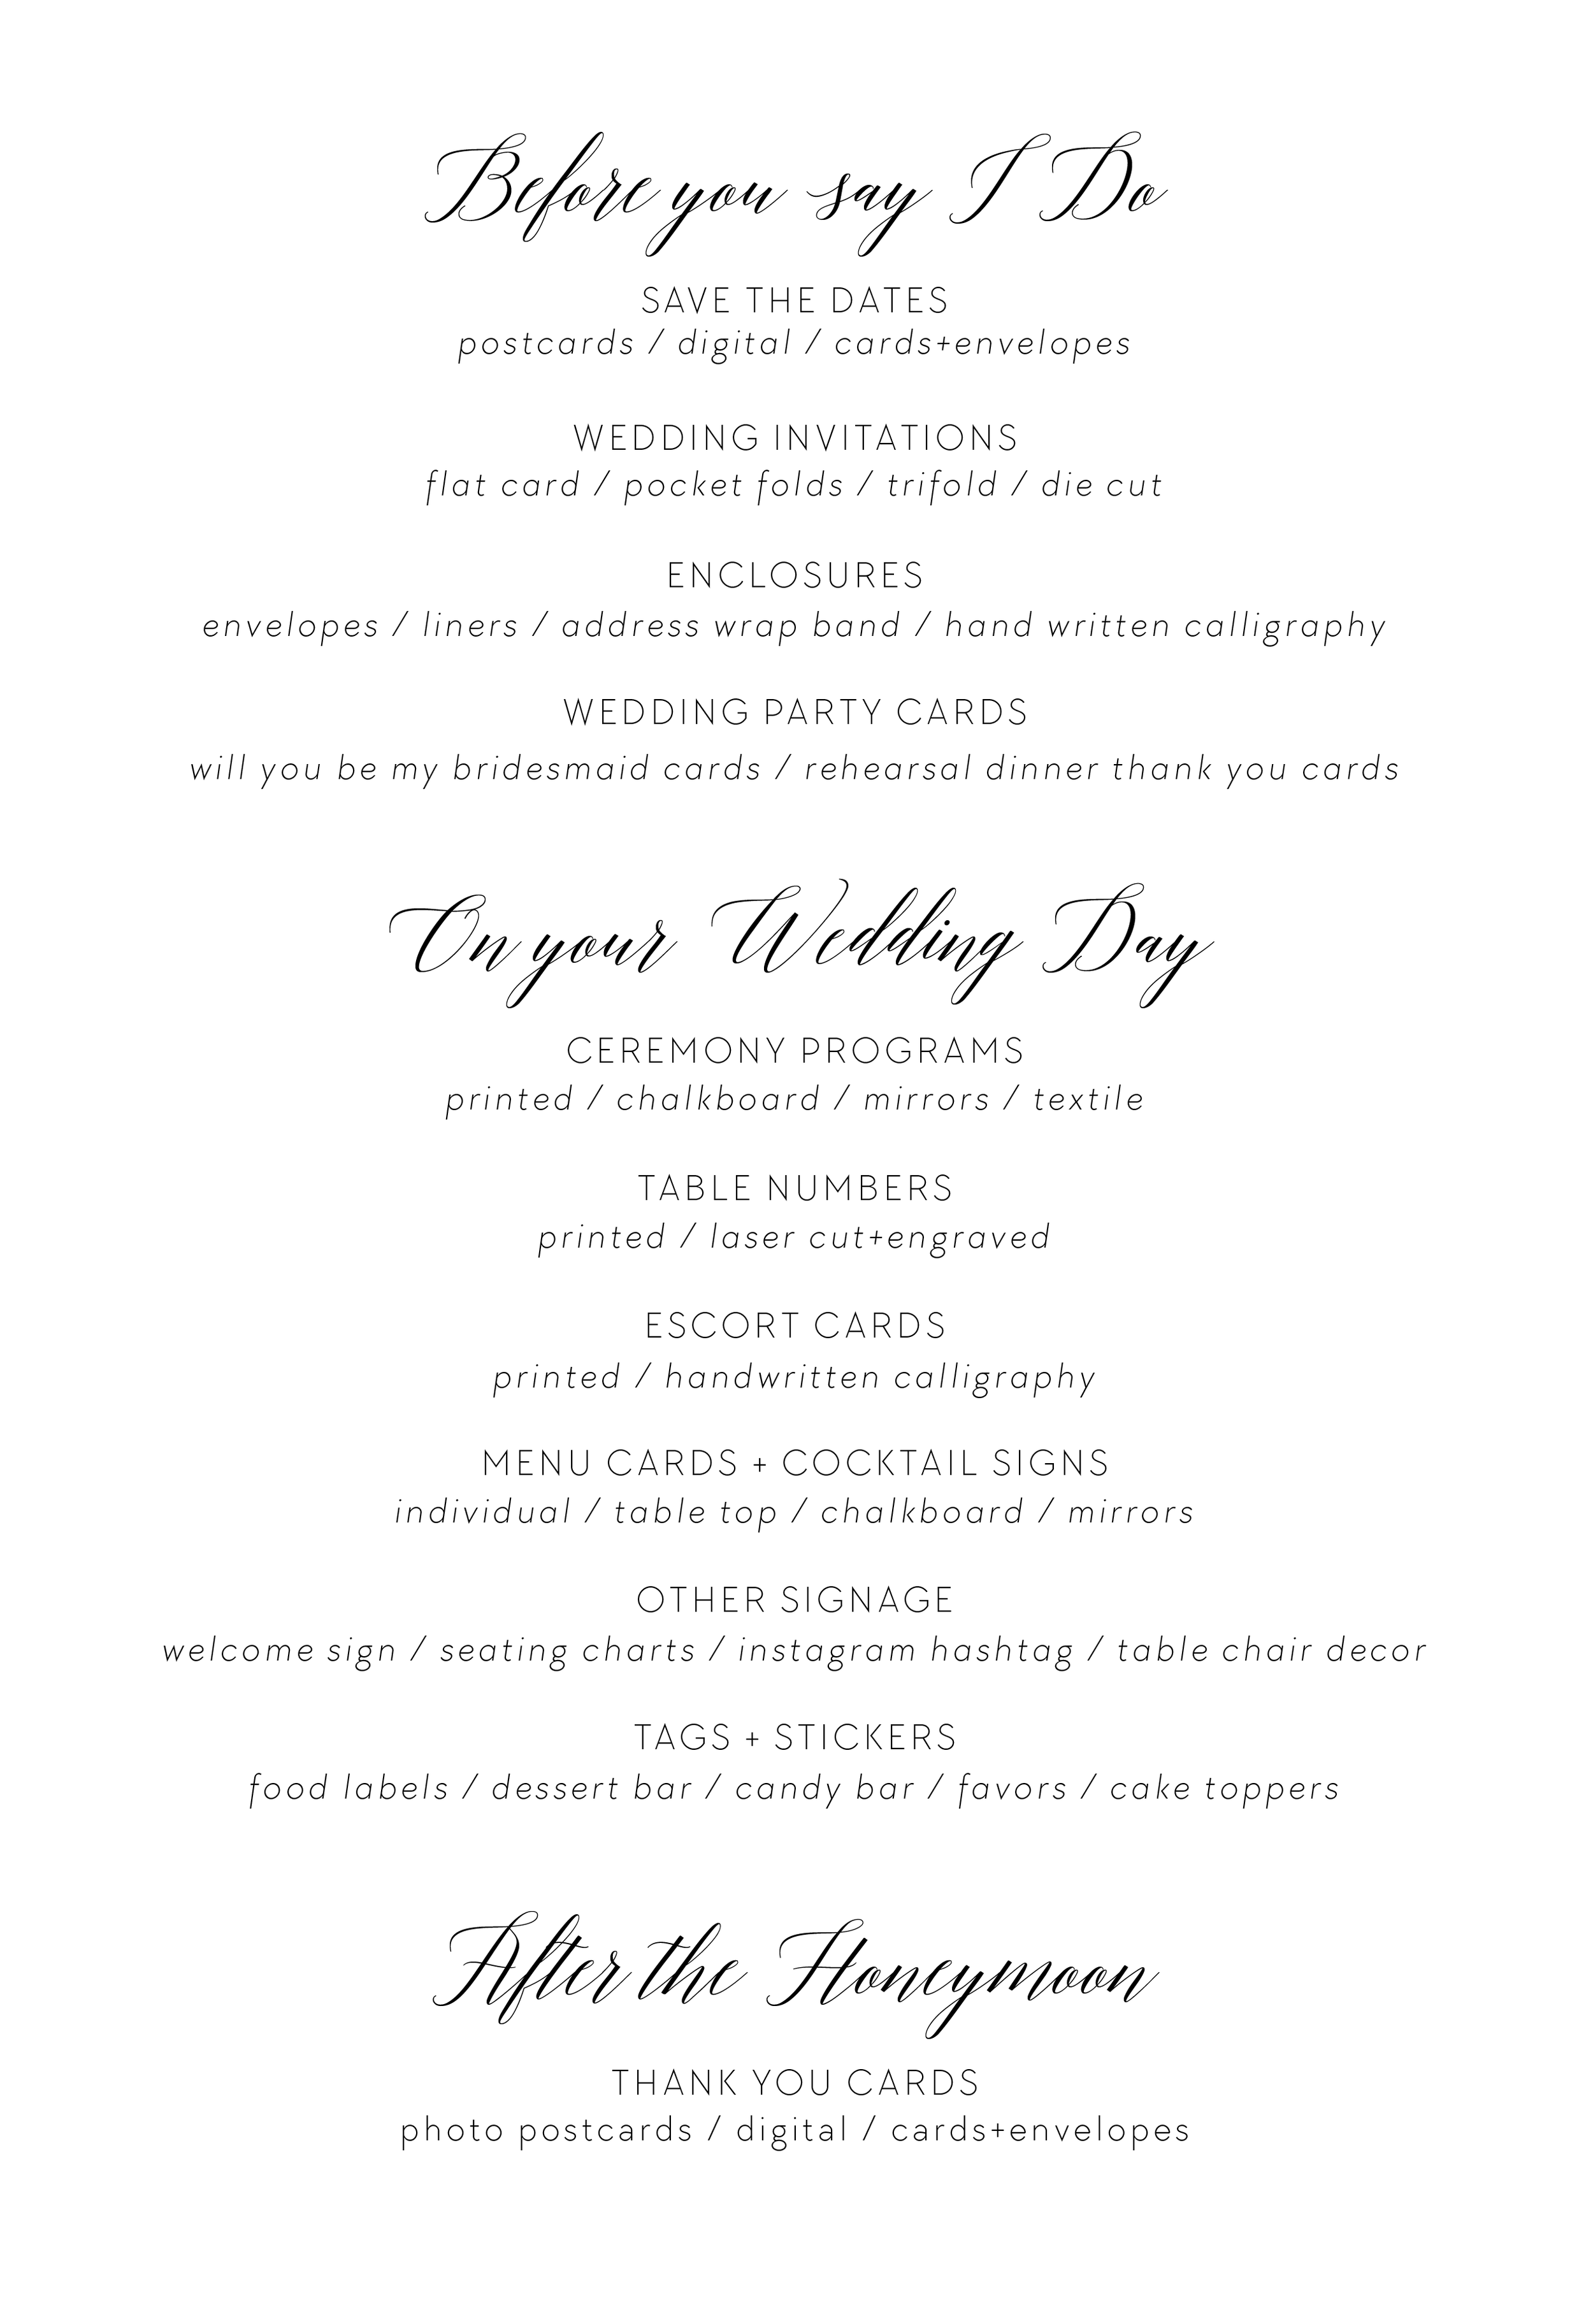 the wedding list-01.png